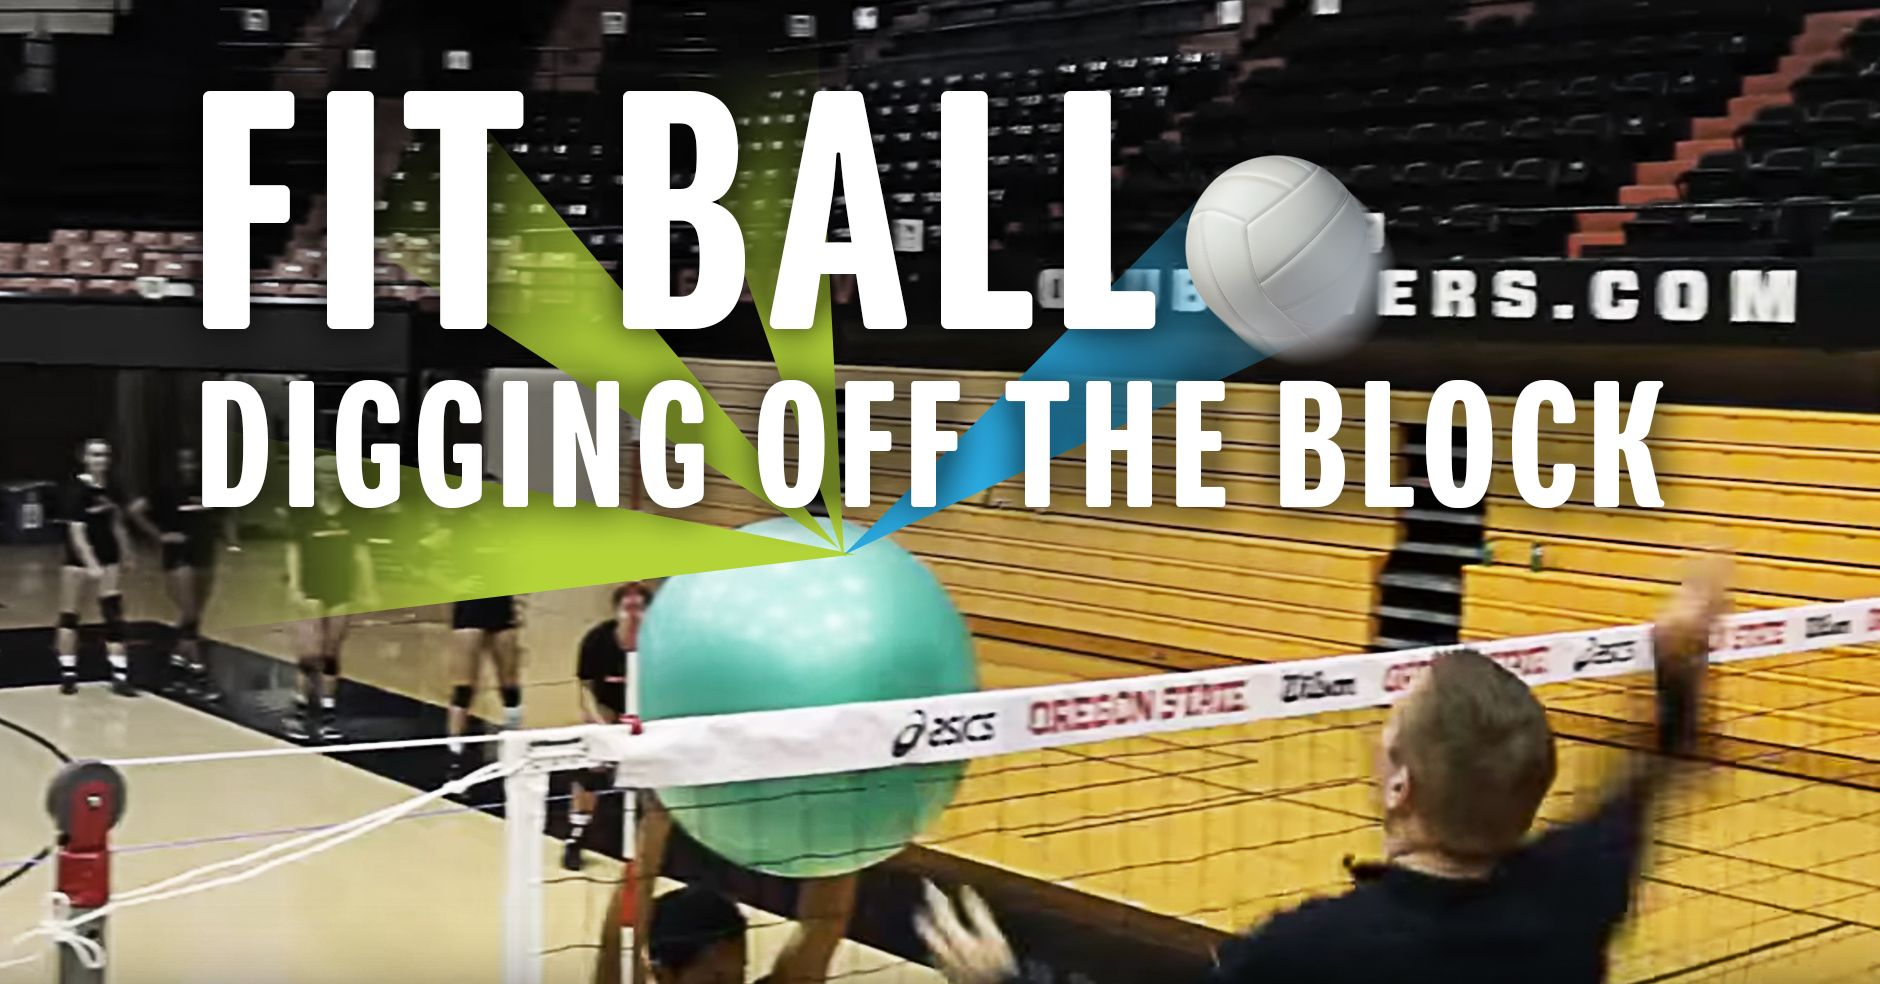 Digging Off The Block Drill Using A Fit Ball Volleybaltraining Volleybal Training Volleybal